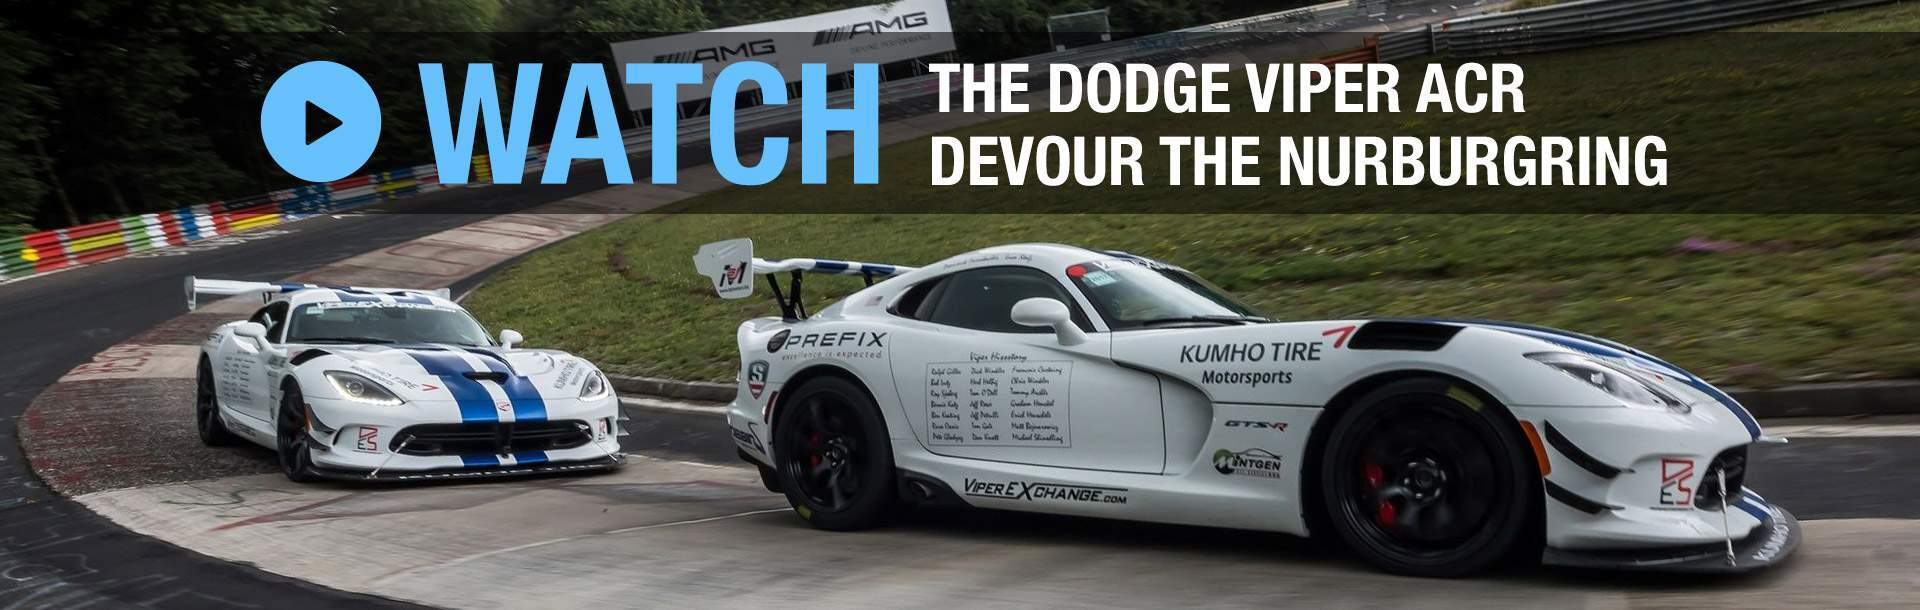 Watch the Dodge Viper ACR Devour the Nurburgring